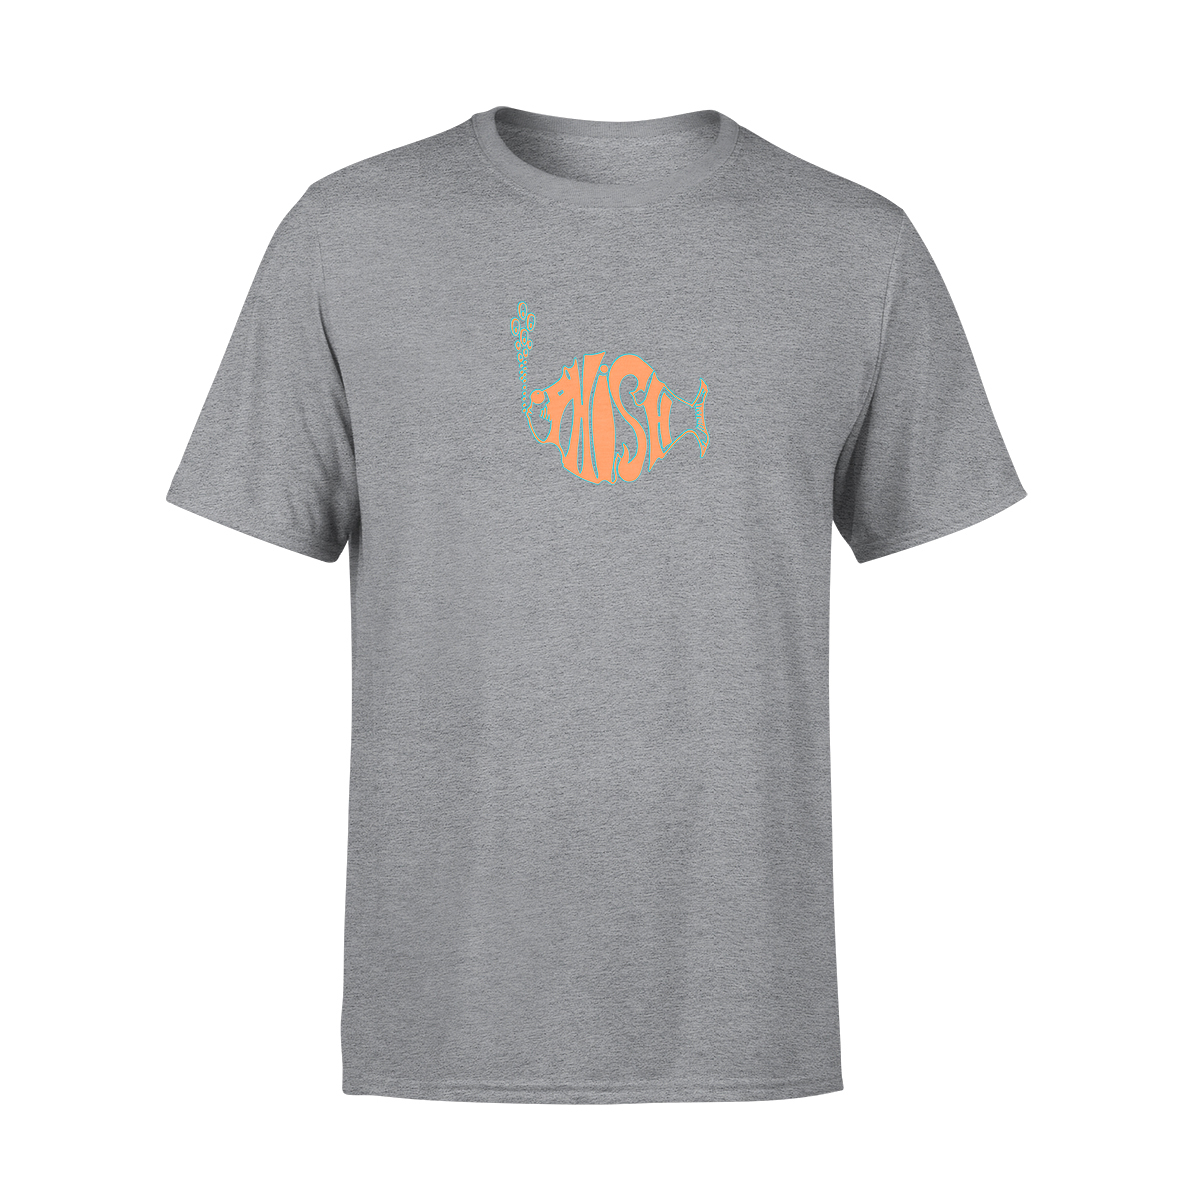 Colorado 2018 Event T on Heathered Grey